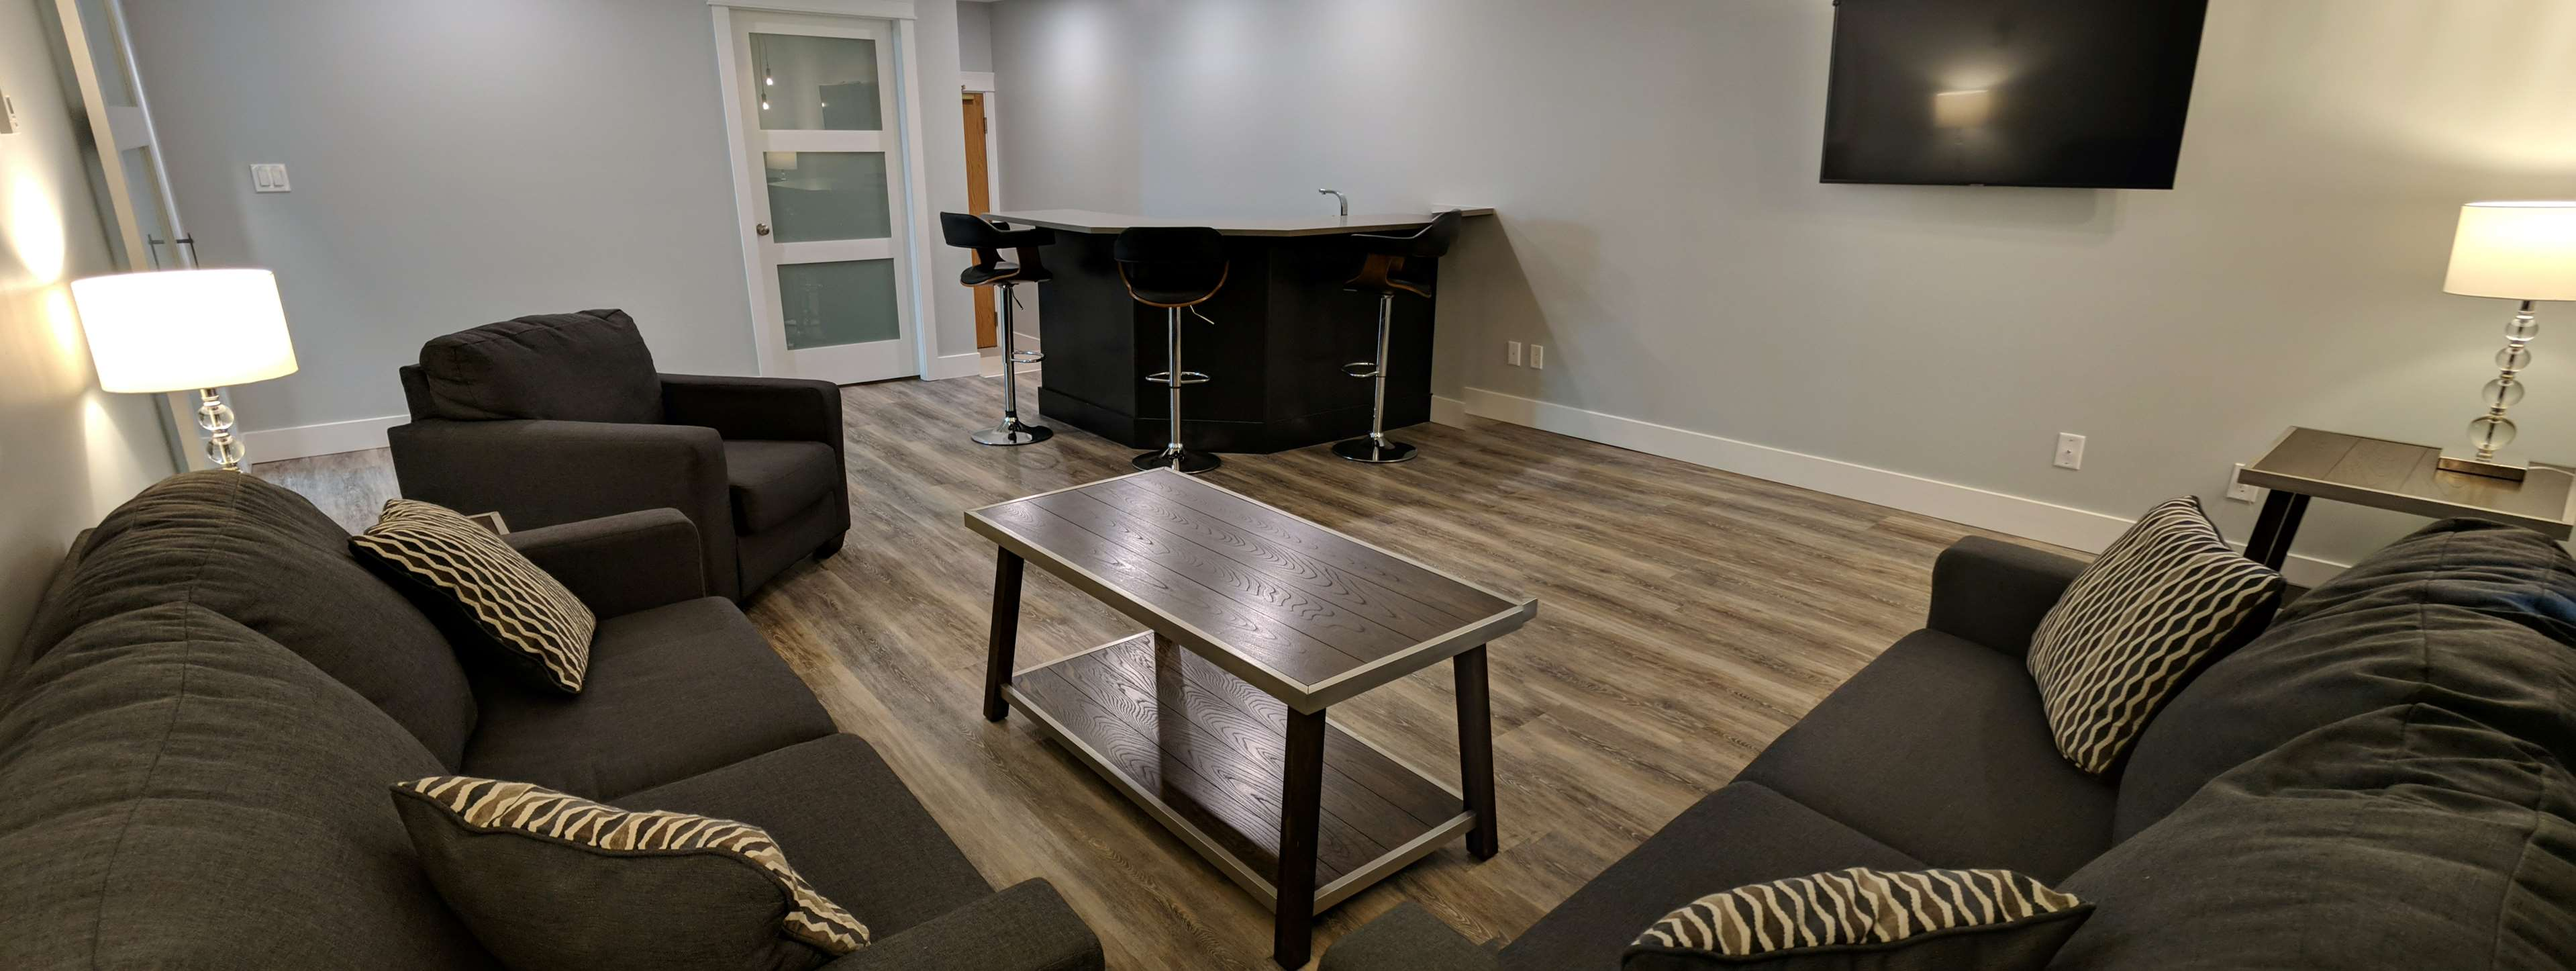 Surestay Hotel By Best Western Chilliwack in Chilliwack: King Suite Living Area